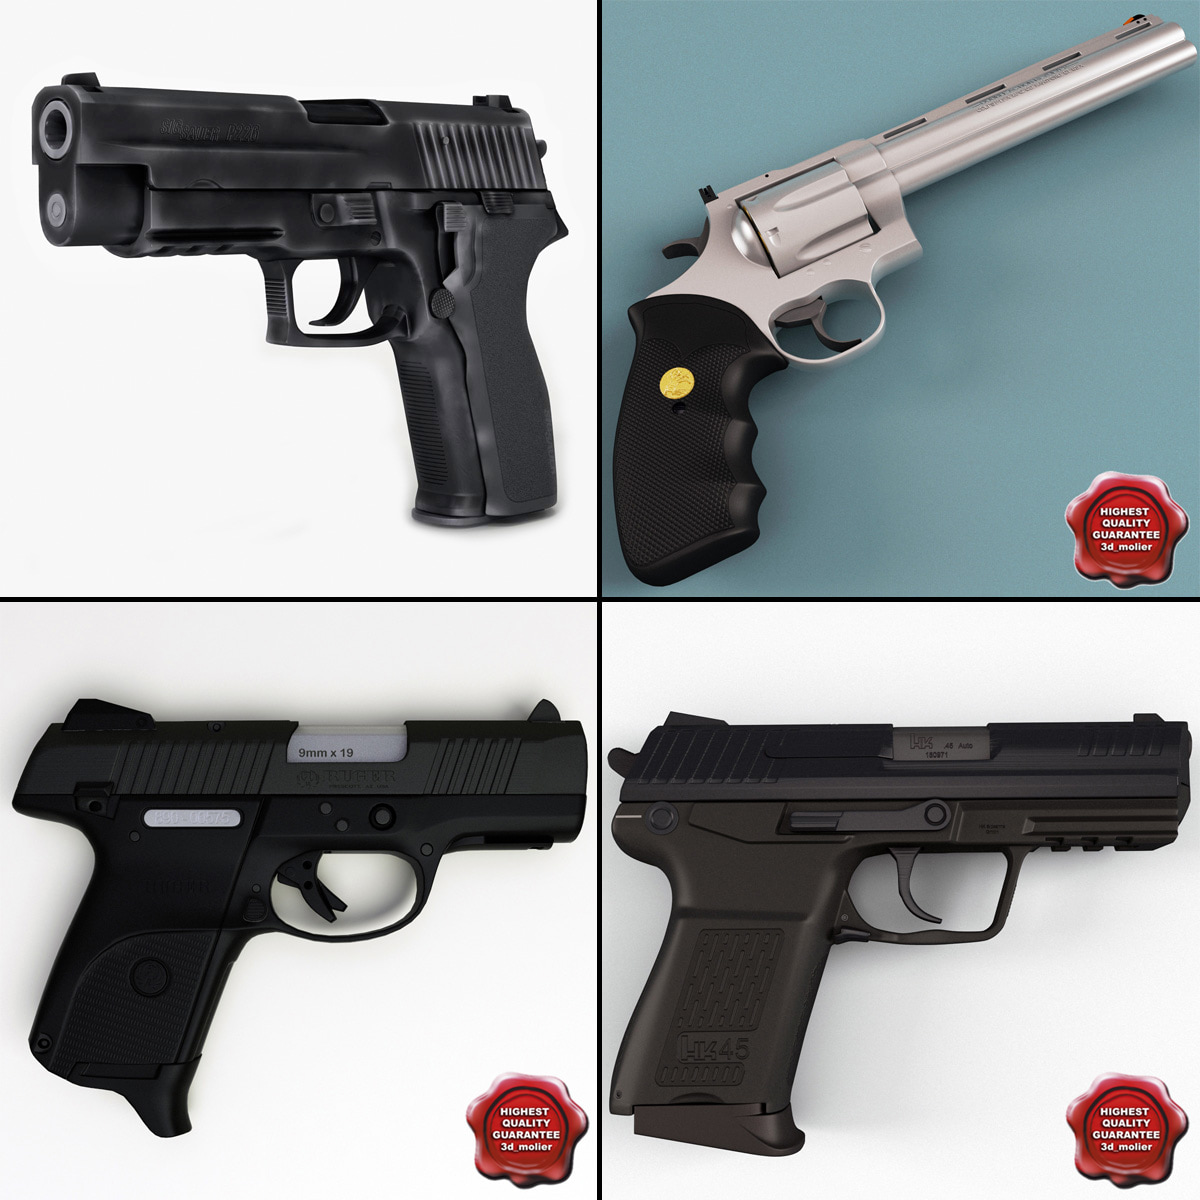 Pistols_Collection_V3_000.jpg